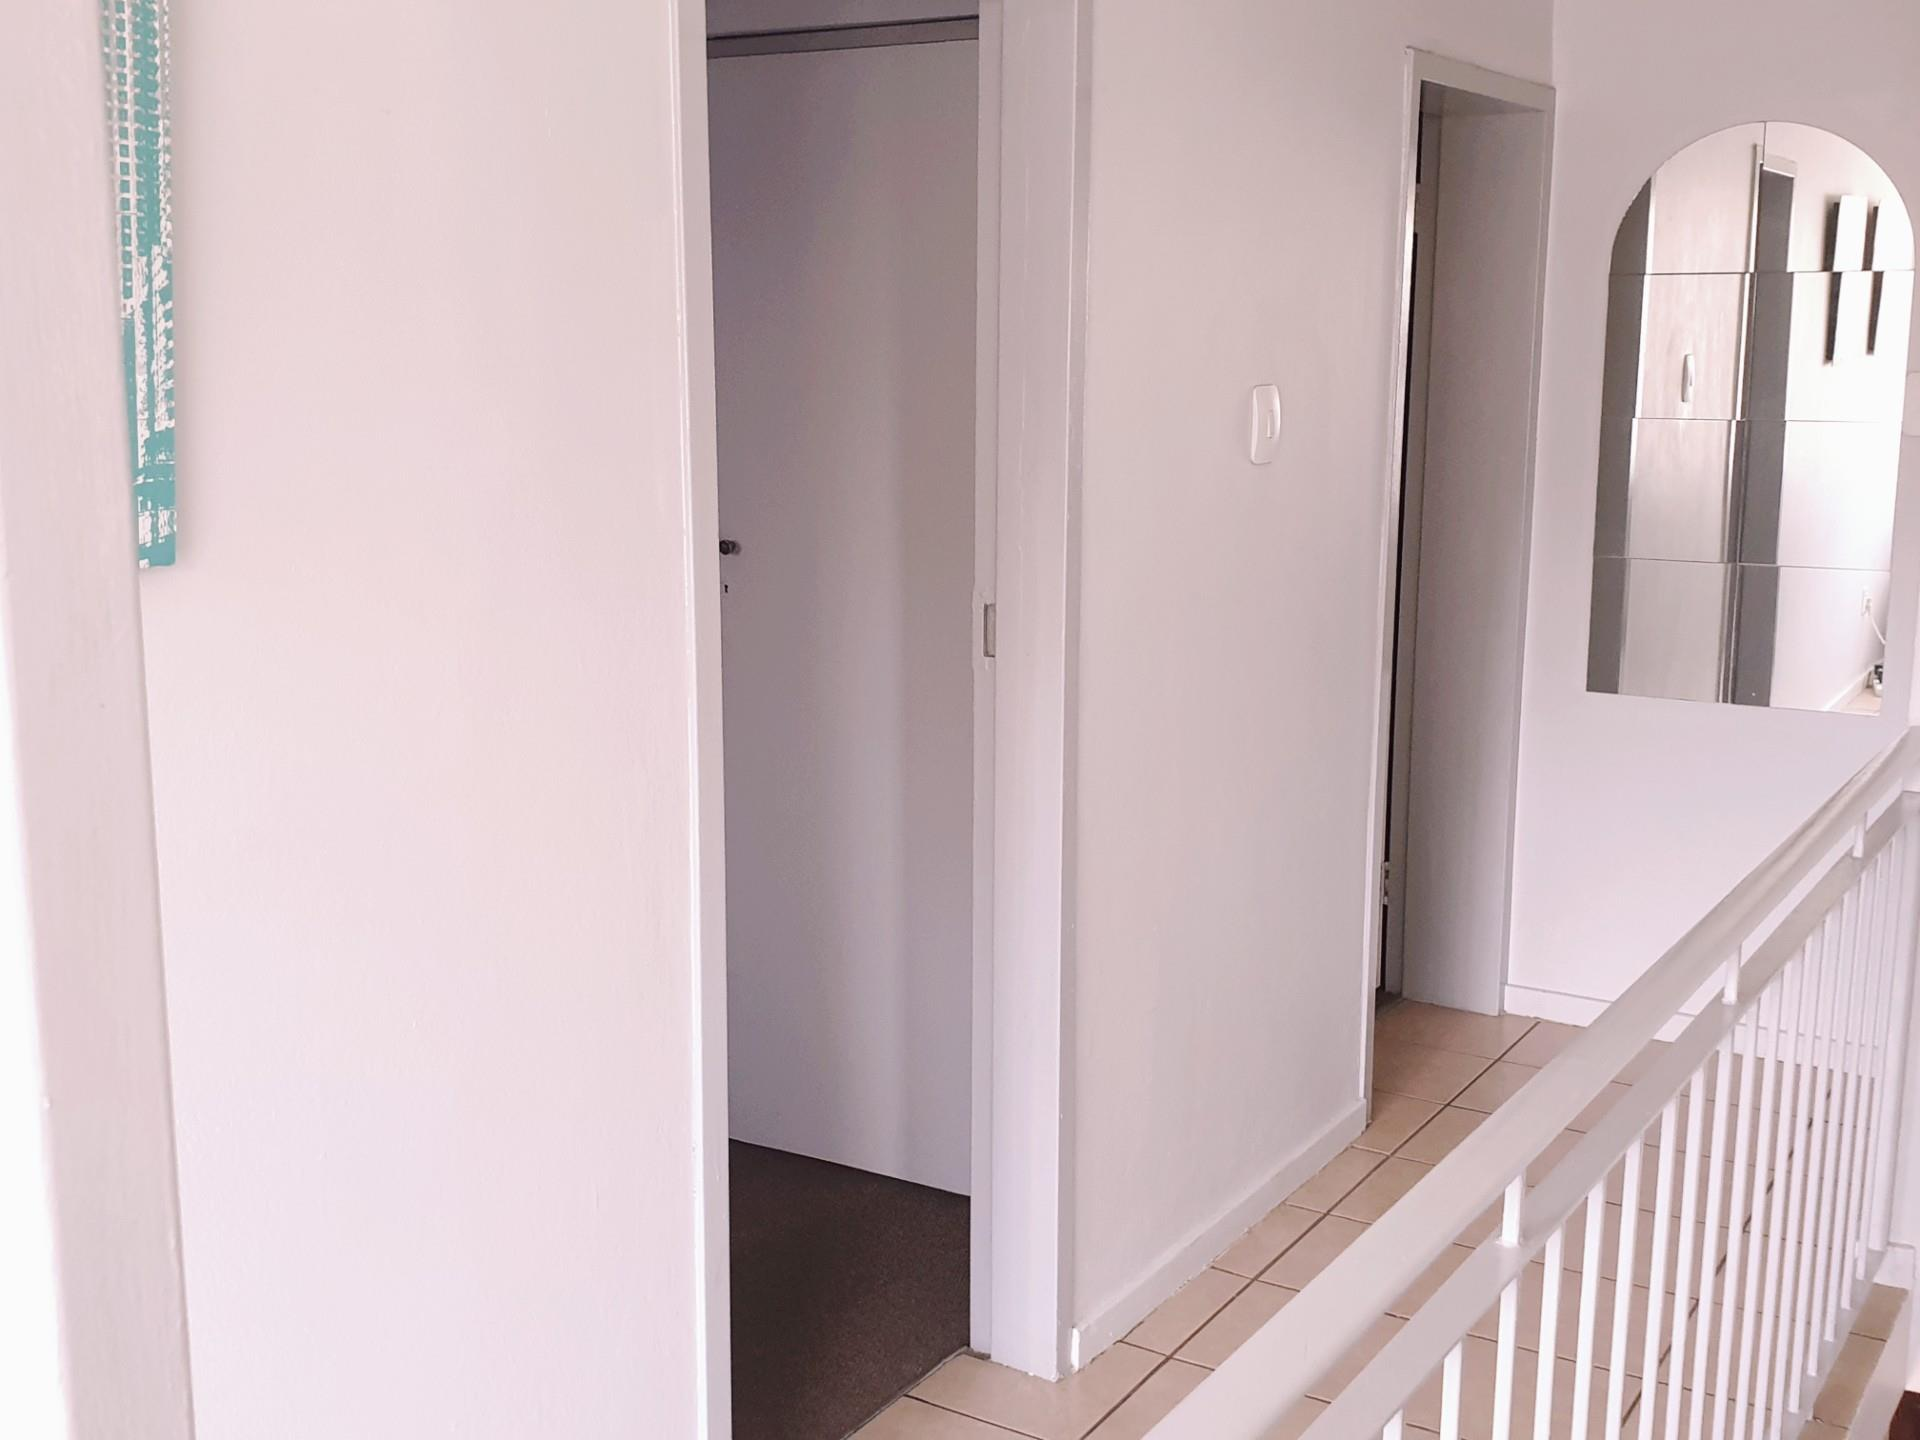 2 Bedroom House For Sale in Gezina